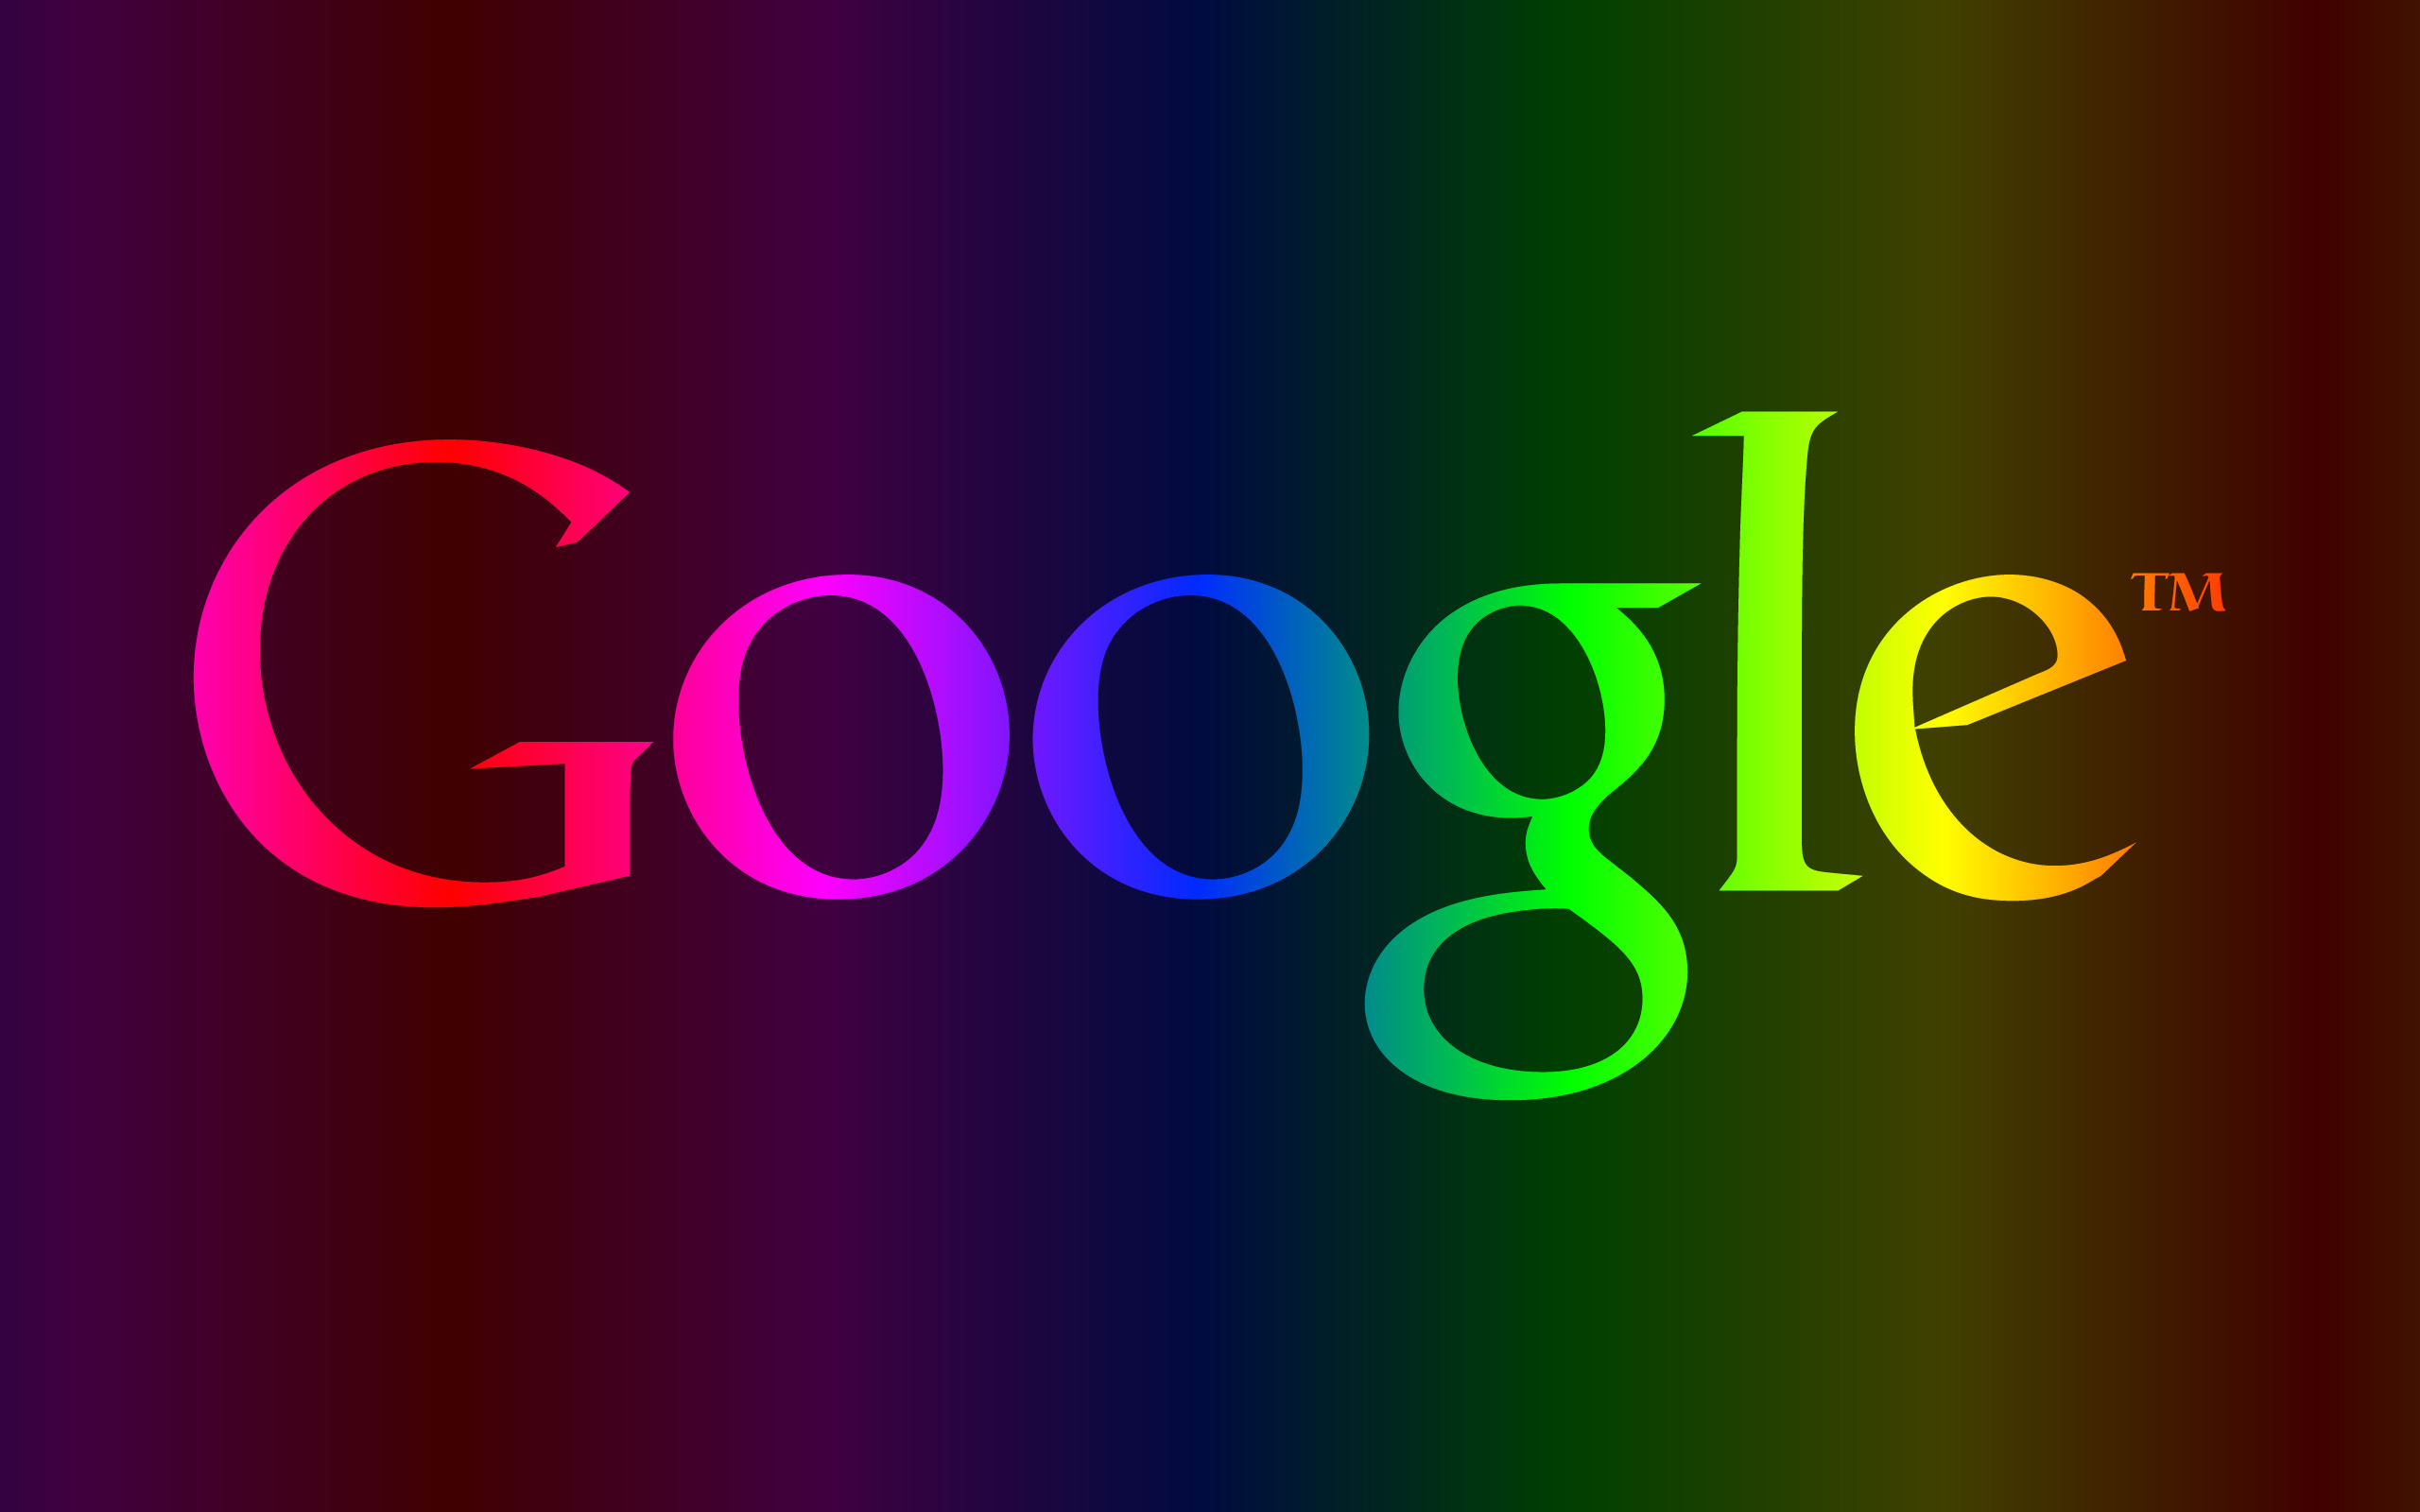 google logo wallpapers 73 images